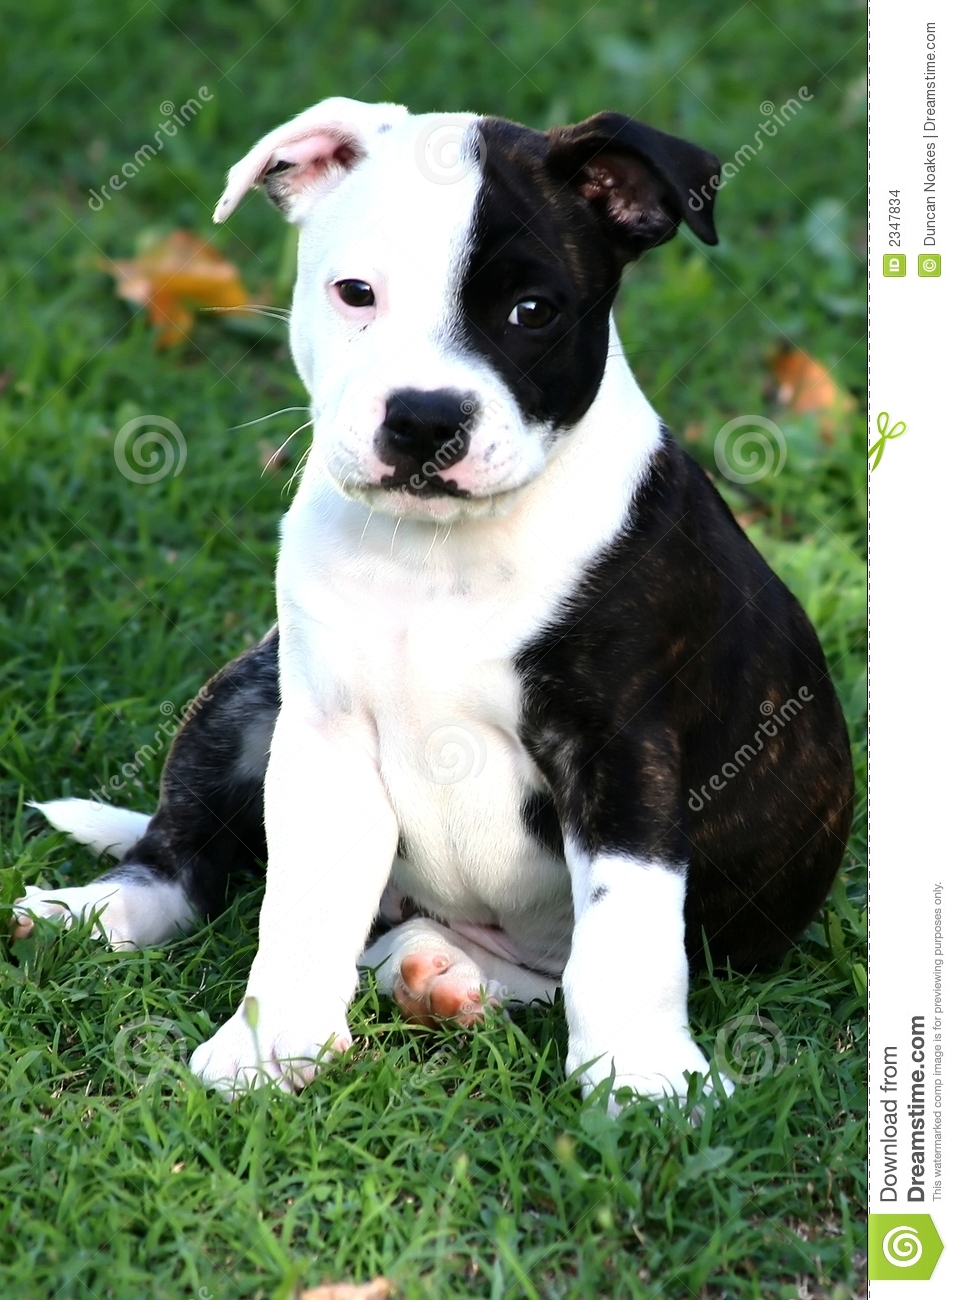 Staffordshire Terrier Puppy Stock Photo - Image: 2347834